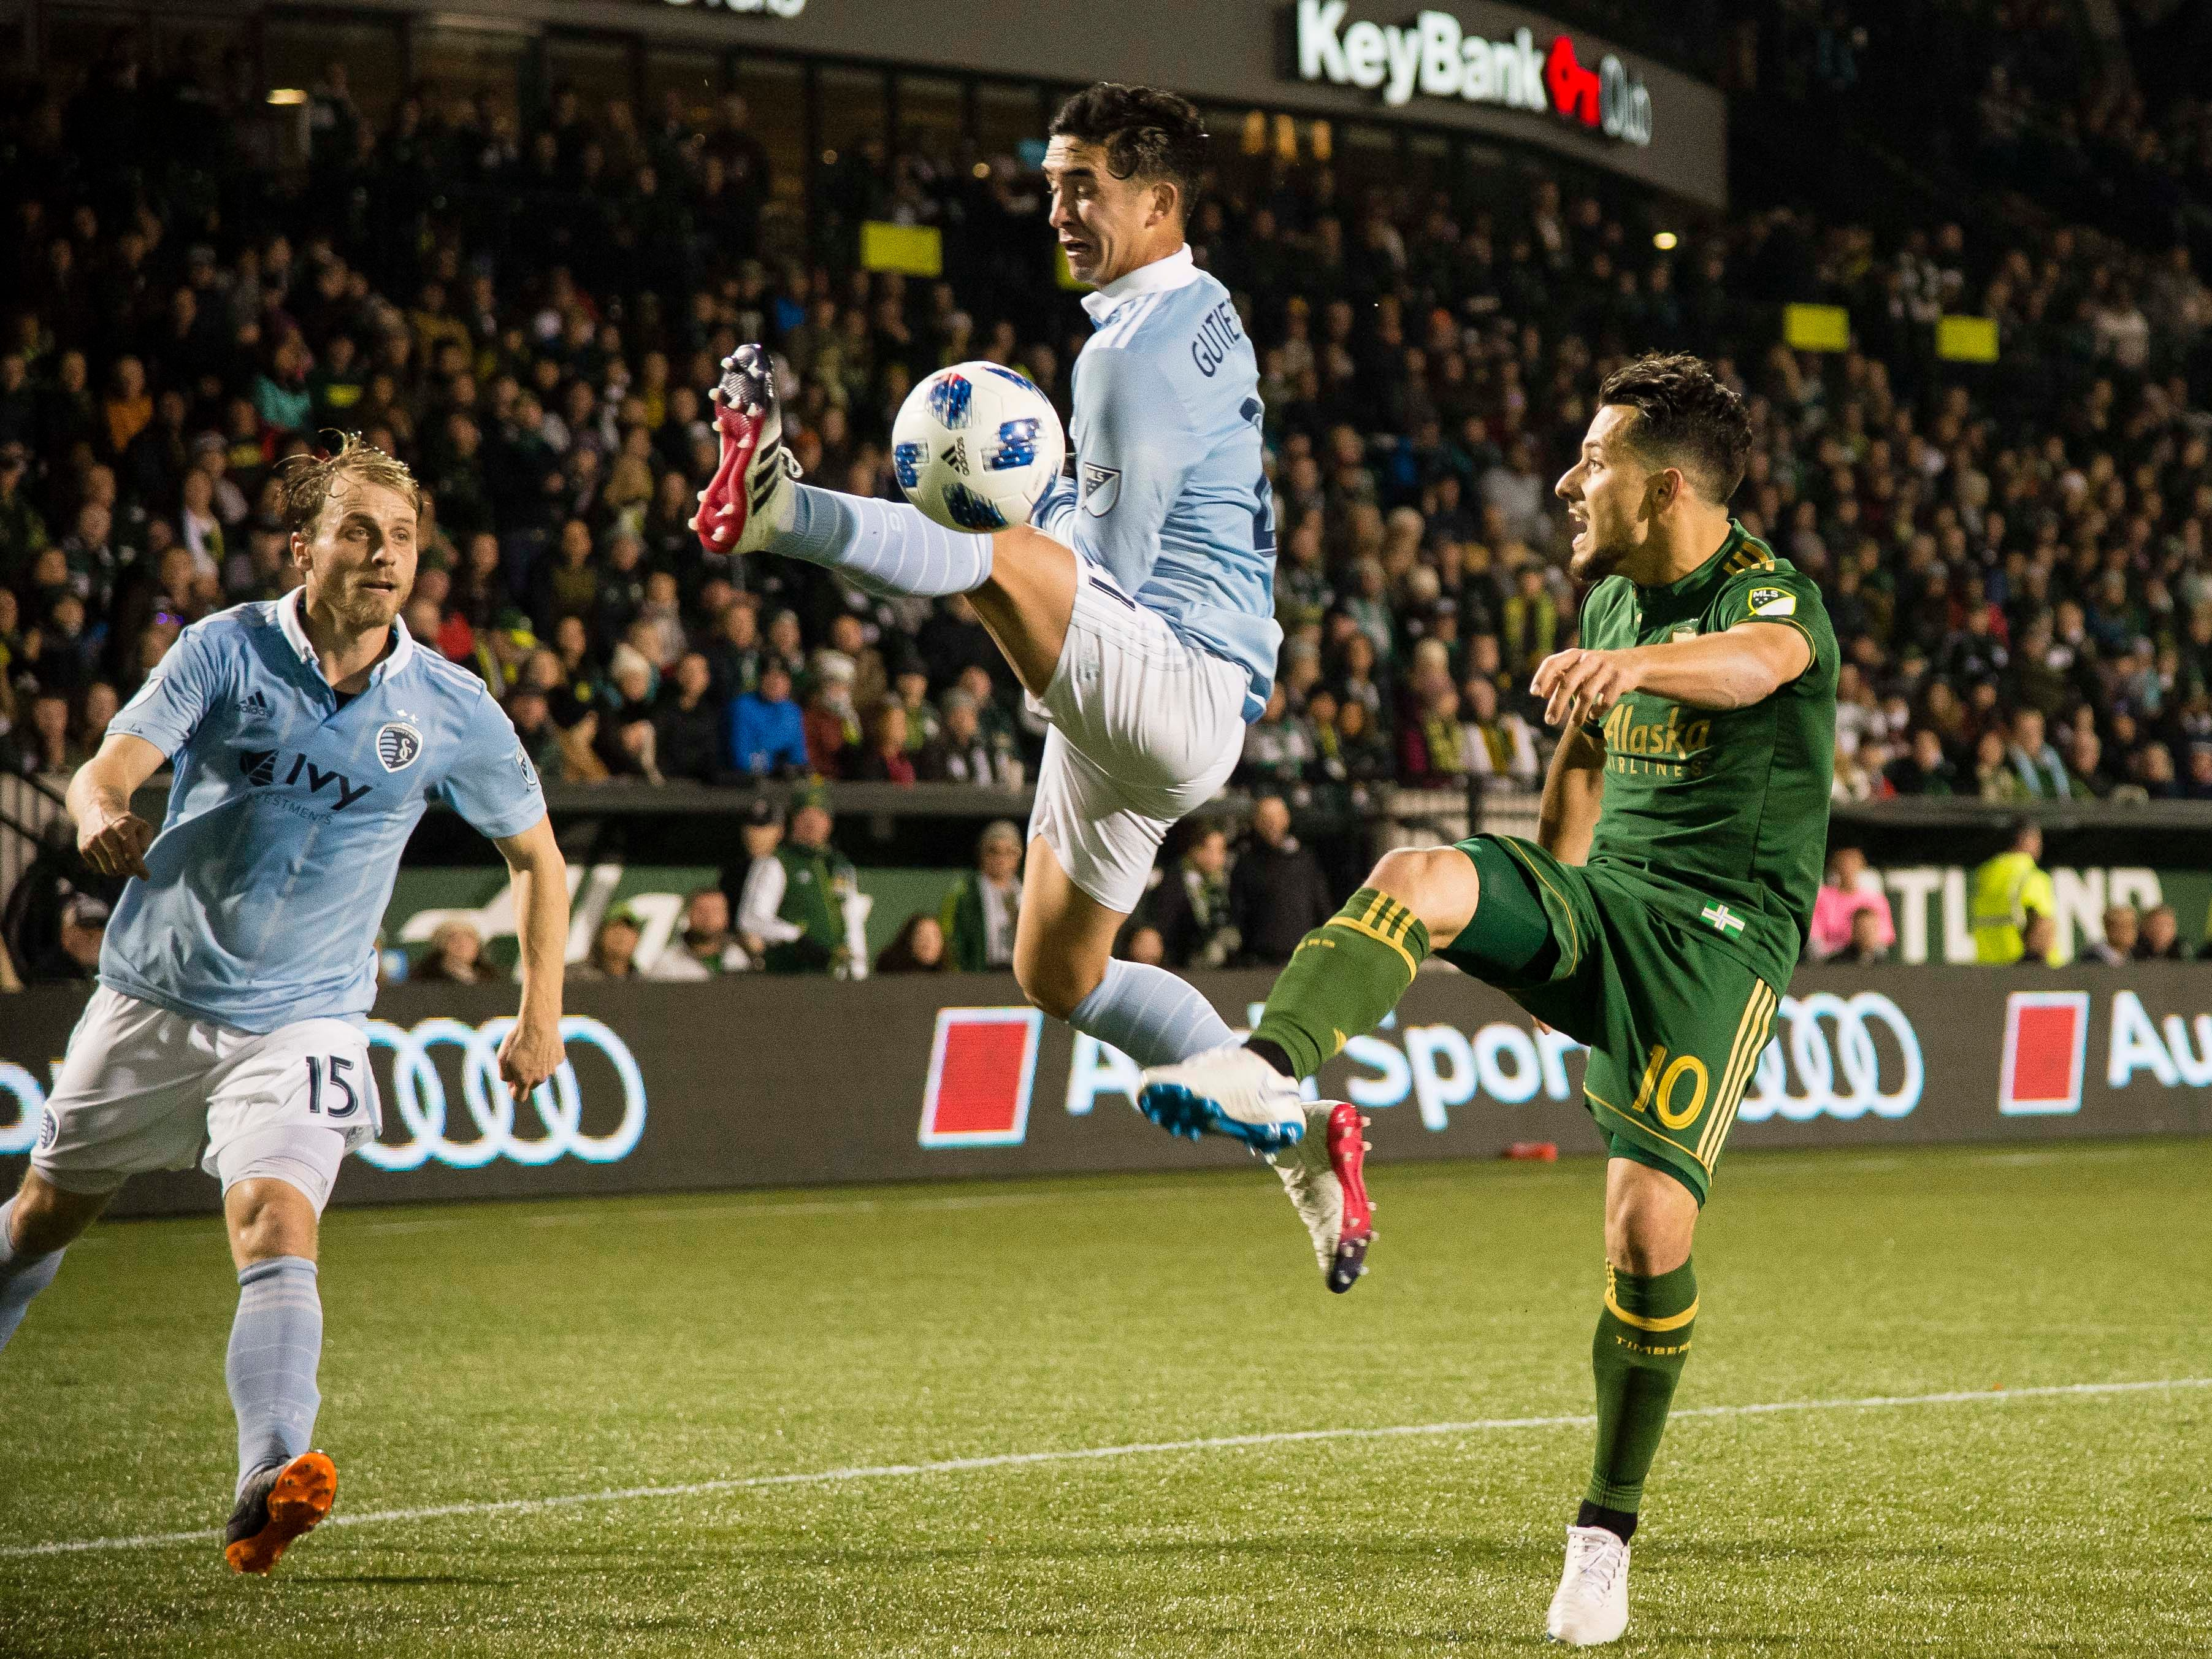 Sporting Kansas City midfielder Felipe Gutierrez kicks the ball away from Portland Timbers midfielder Sebastian Blanco during the first half in the first leg of the MLS Western Conference Championship at Providence Park. The game ended in a 0-0 tie.